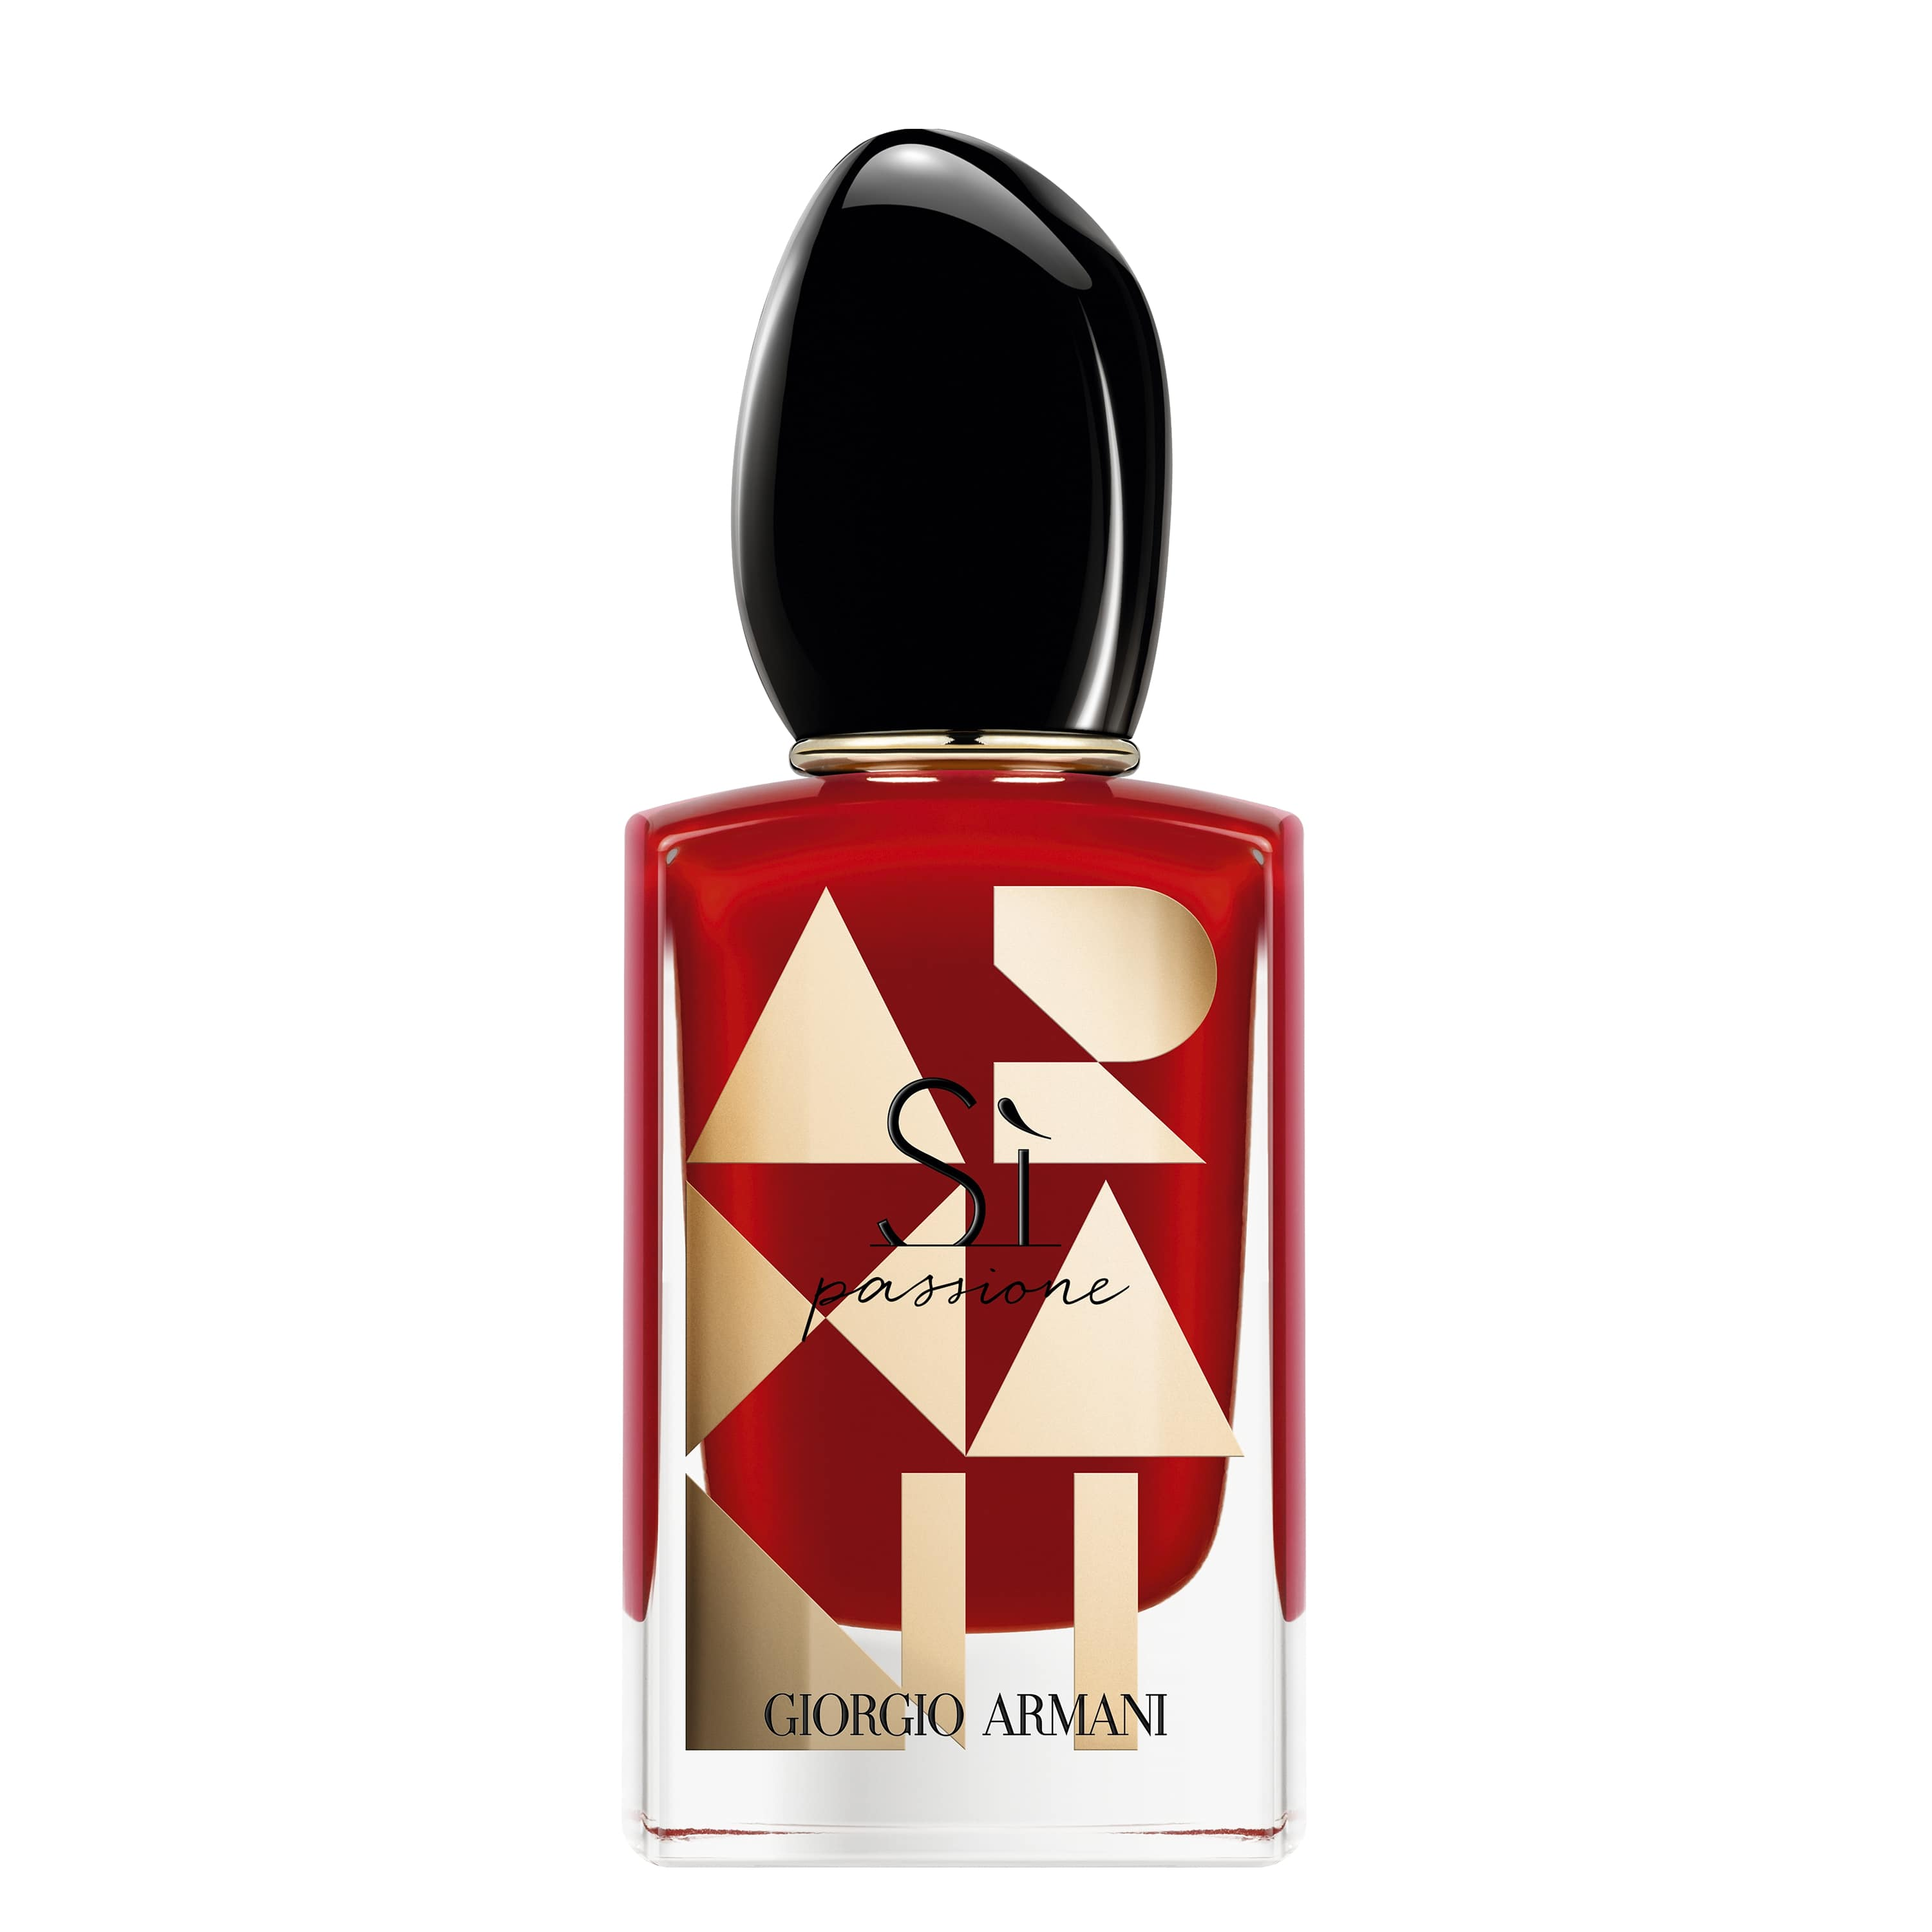 Armani Sí Passione Edp Limited Edition 50 ml